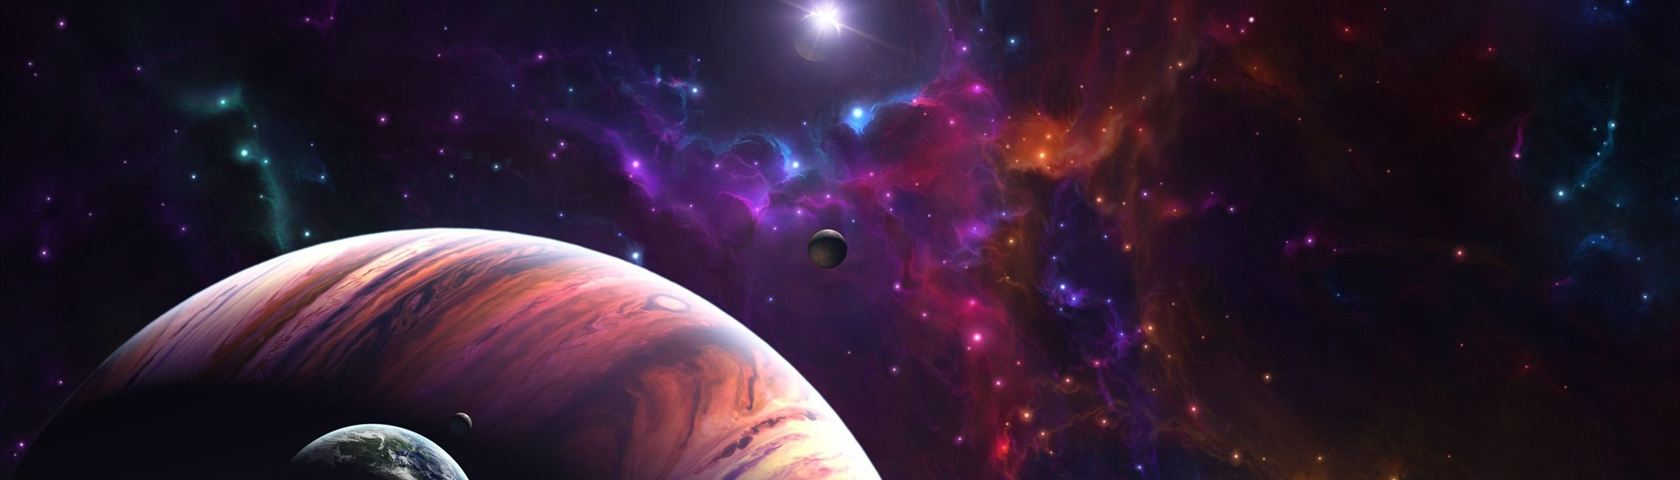 Colourful Space